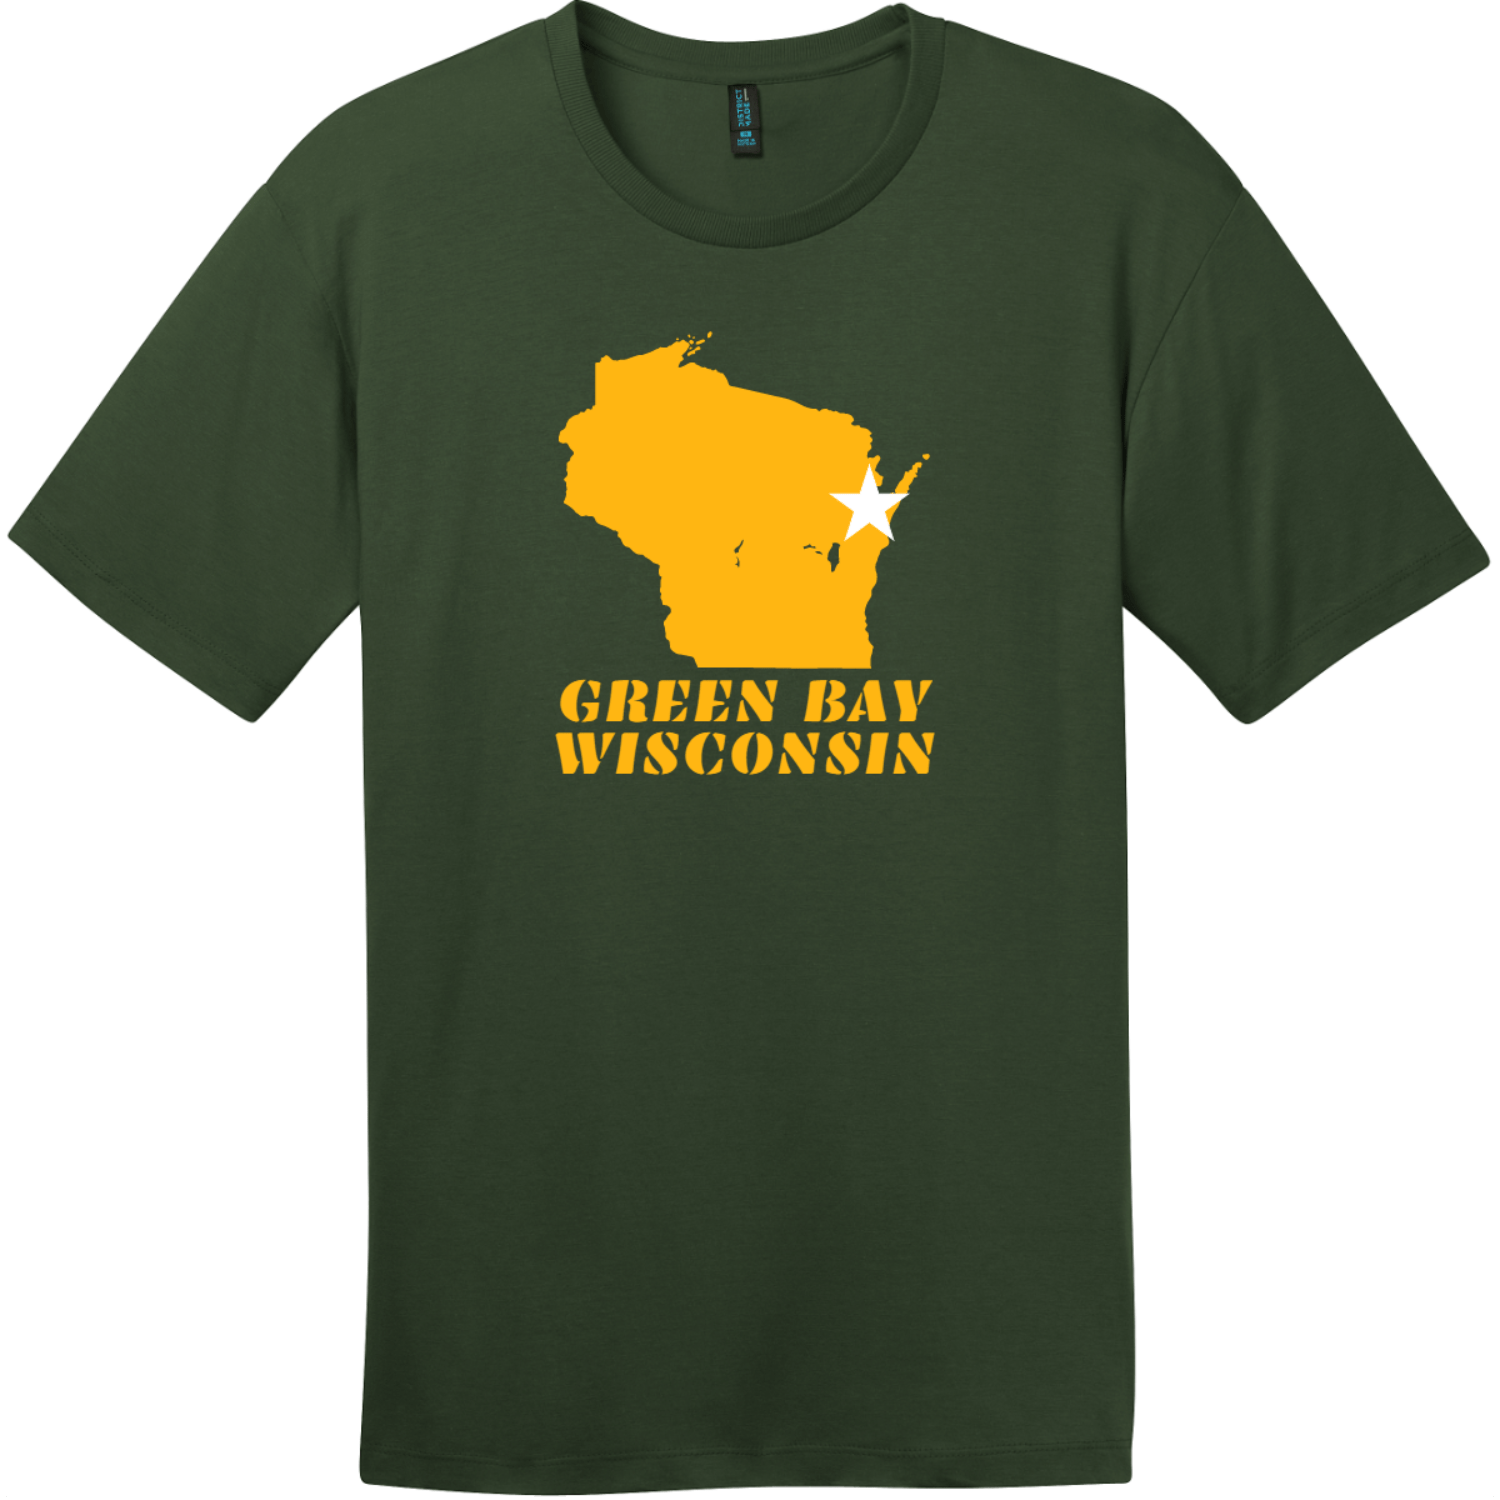 Green Bay Wisconsin State Retro T-Shirt Thyme Green District Perfect Weight Tee DT104